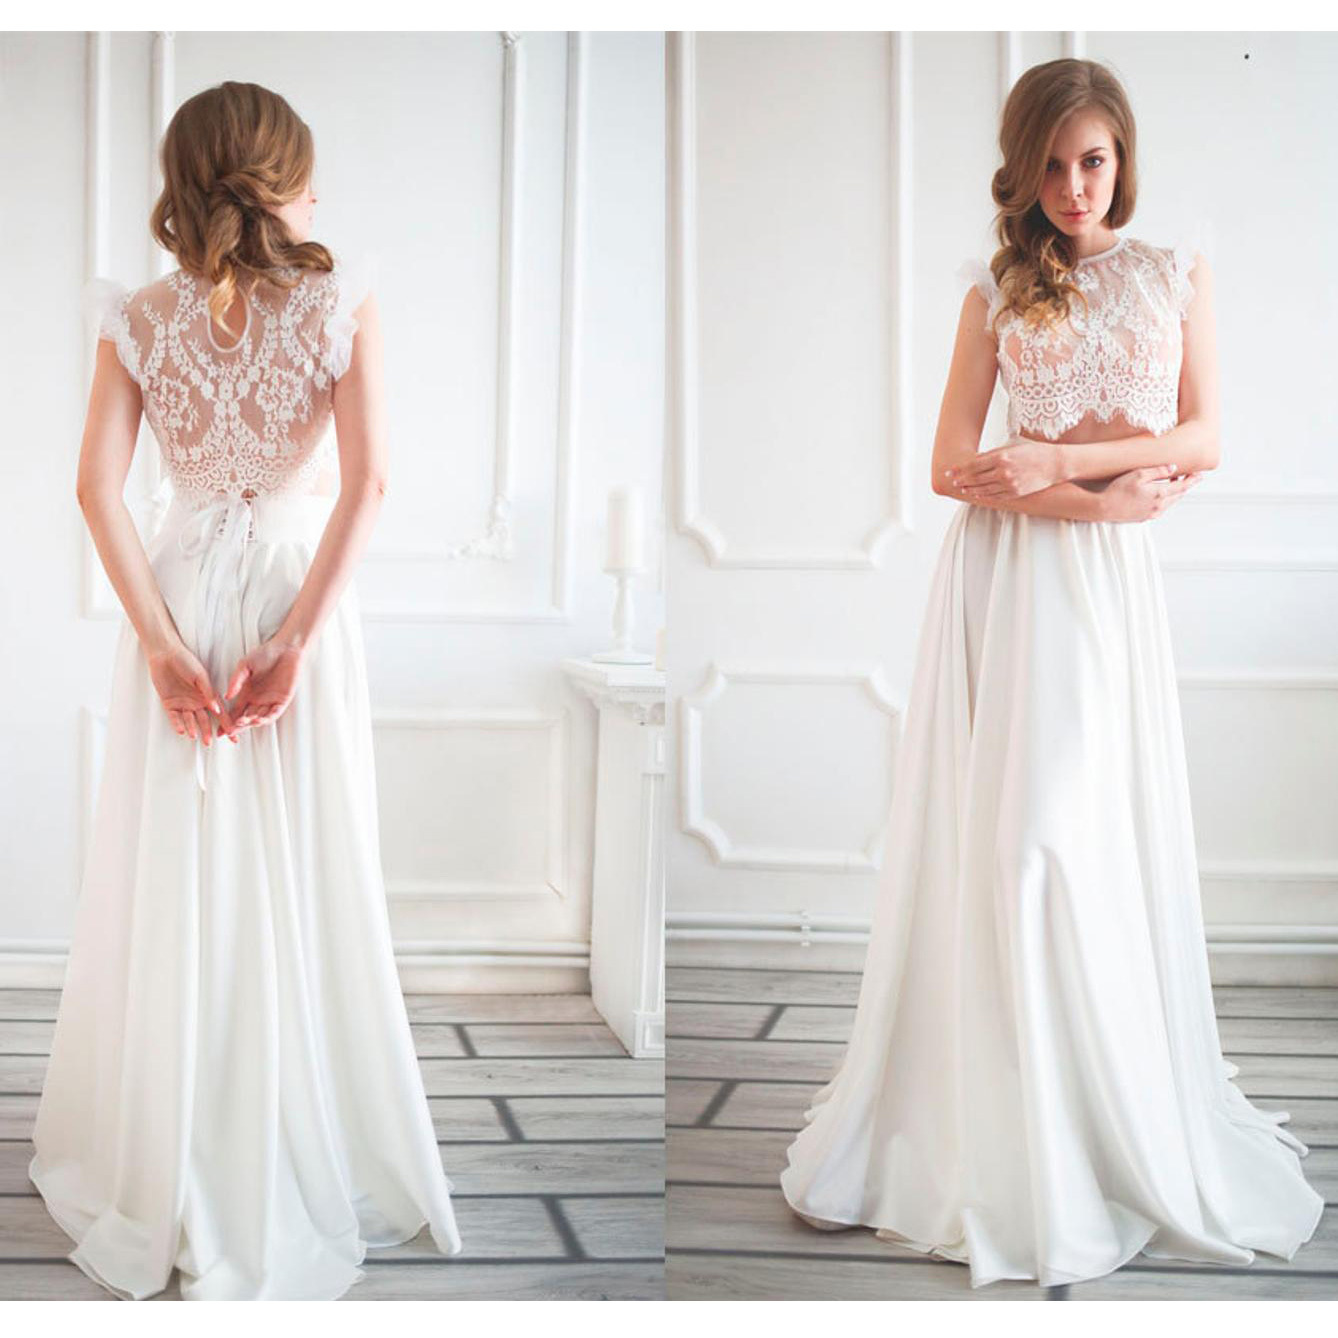 Model showing back and front of Anna Skoblikova Two-Piece Boho wedding dress photo